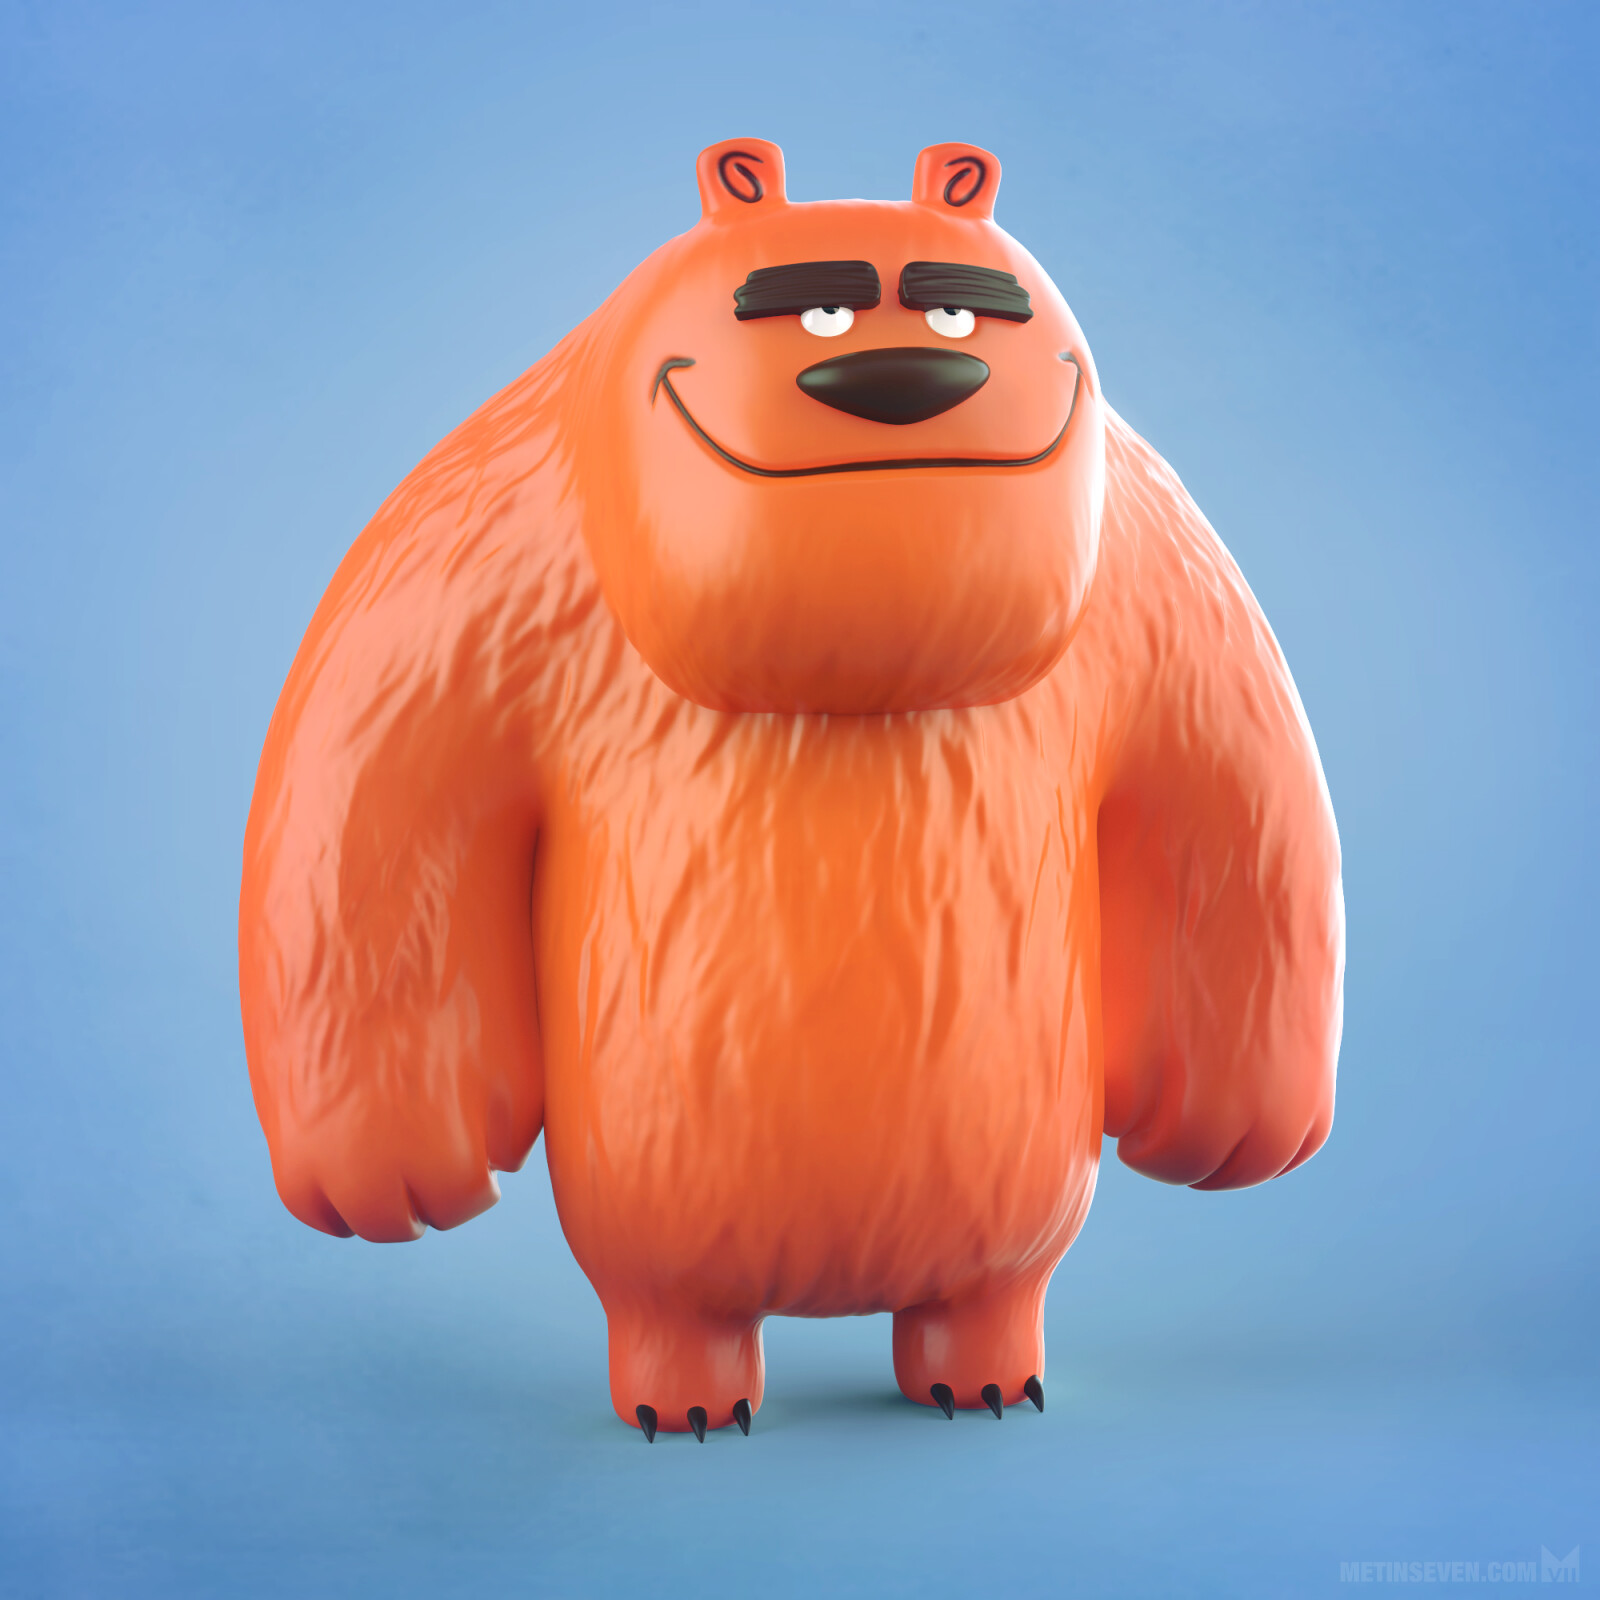 Cartoony bear toy design | Concept: James Burks